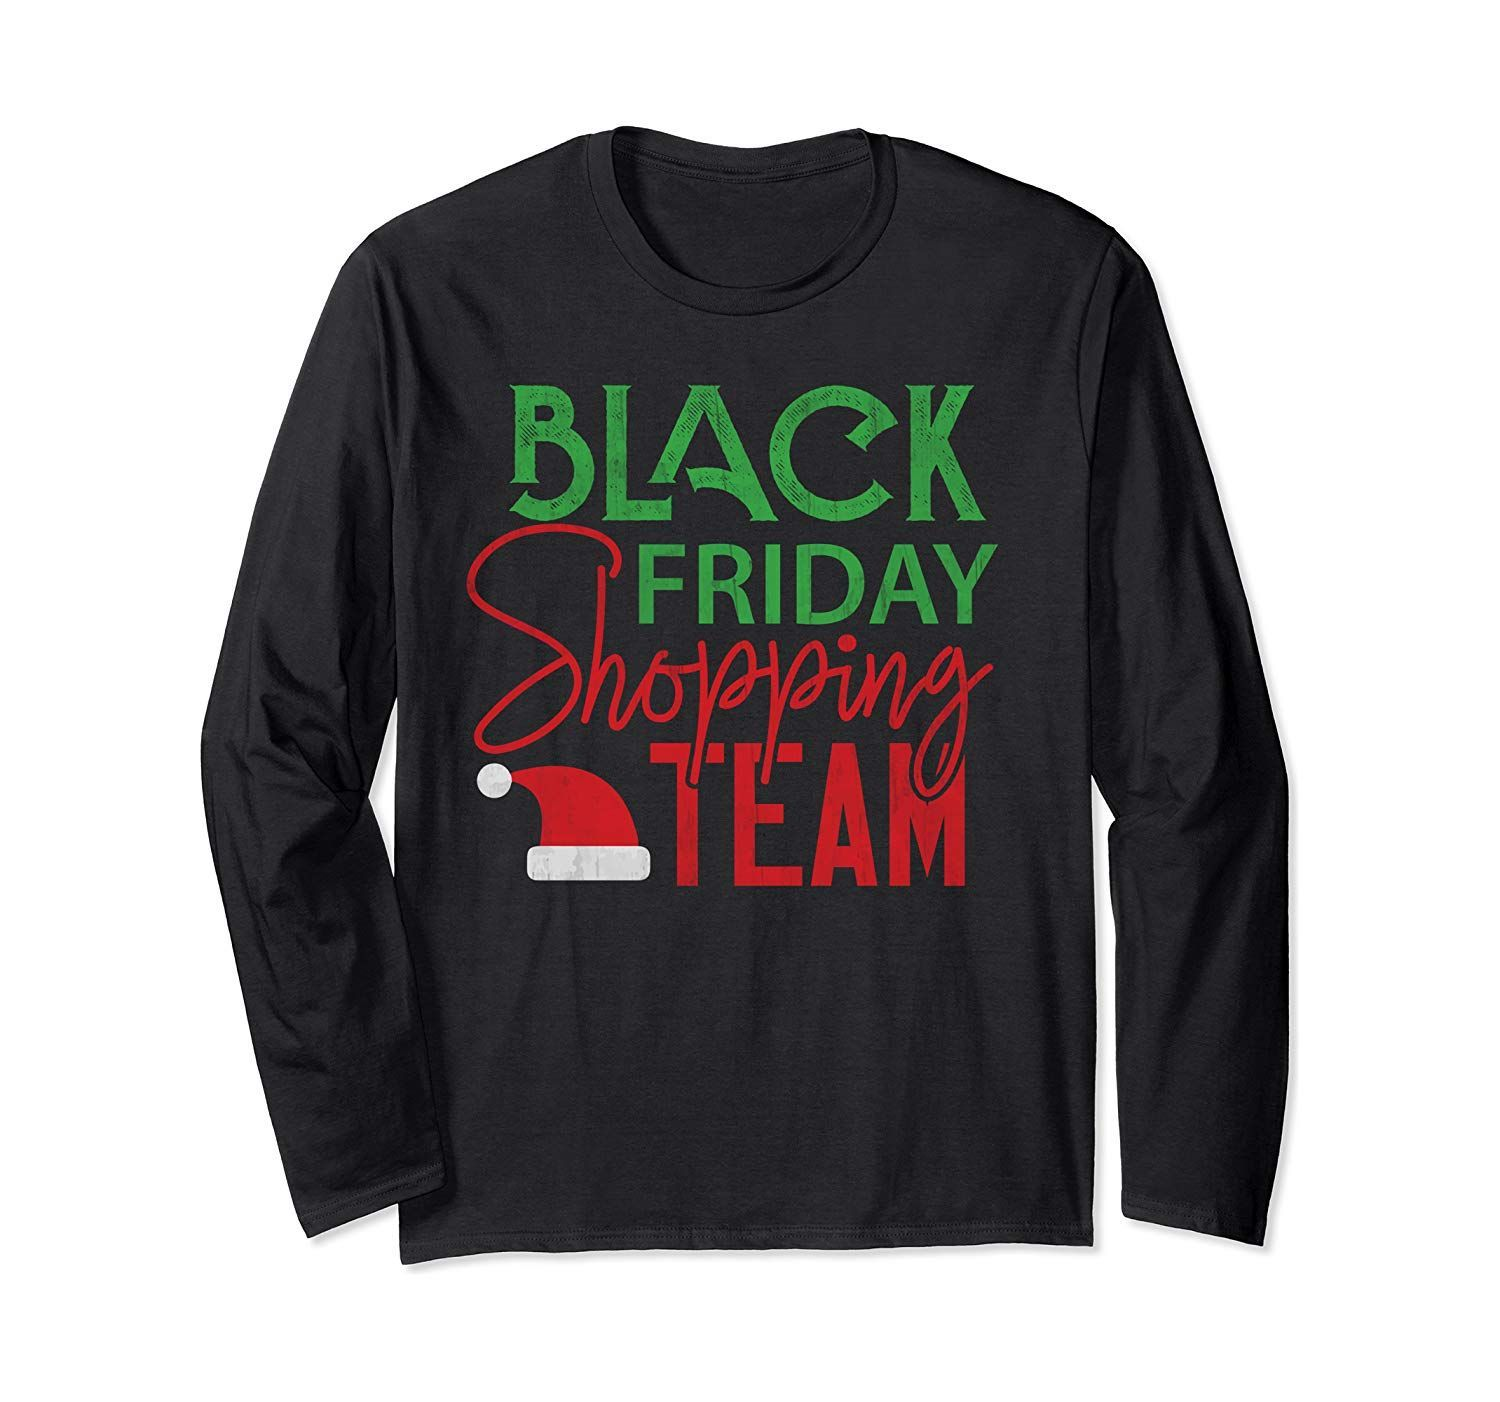 Black Friday Shopping Team Lustiges Weihnachtsgeschenk Langarm T-Shirt #blackfridayfunny